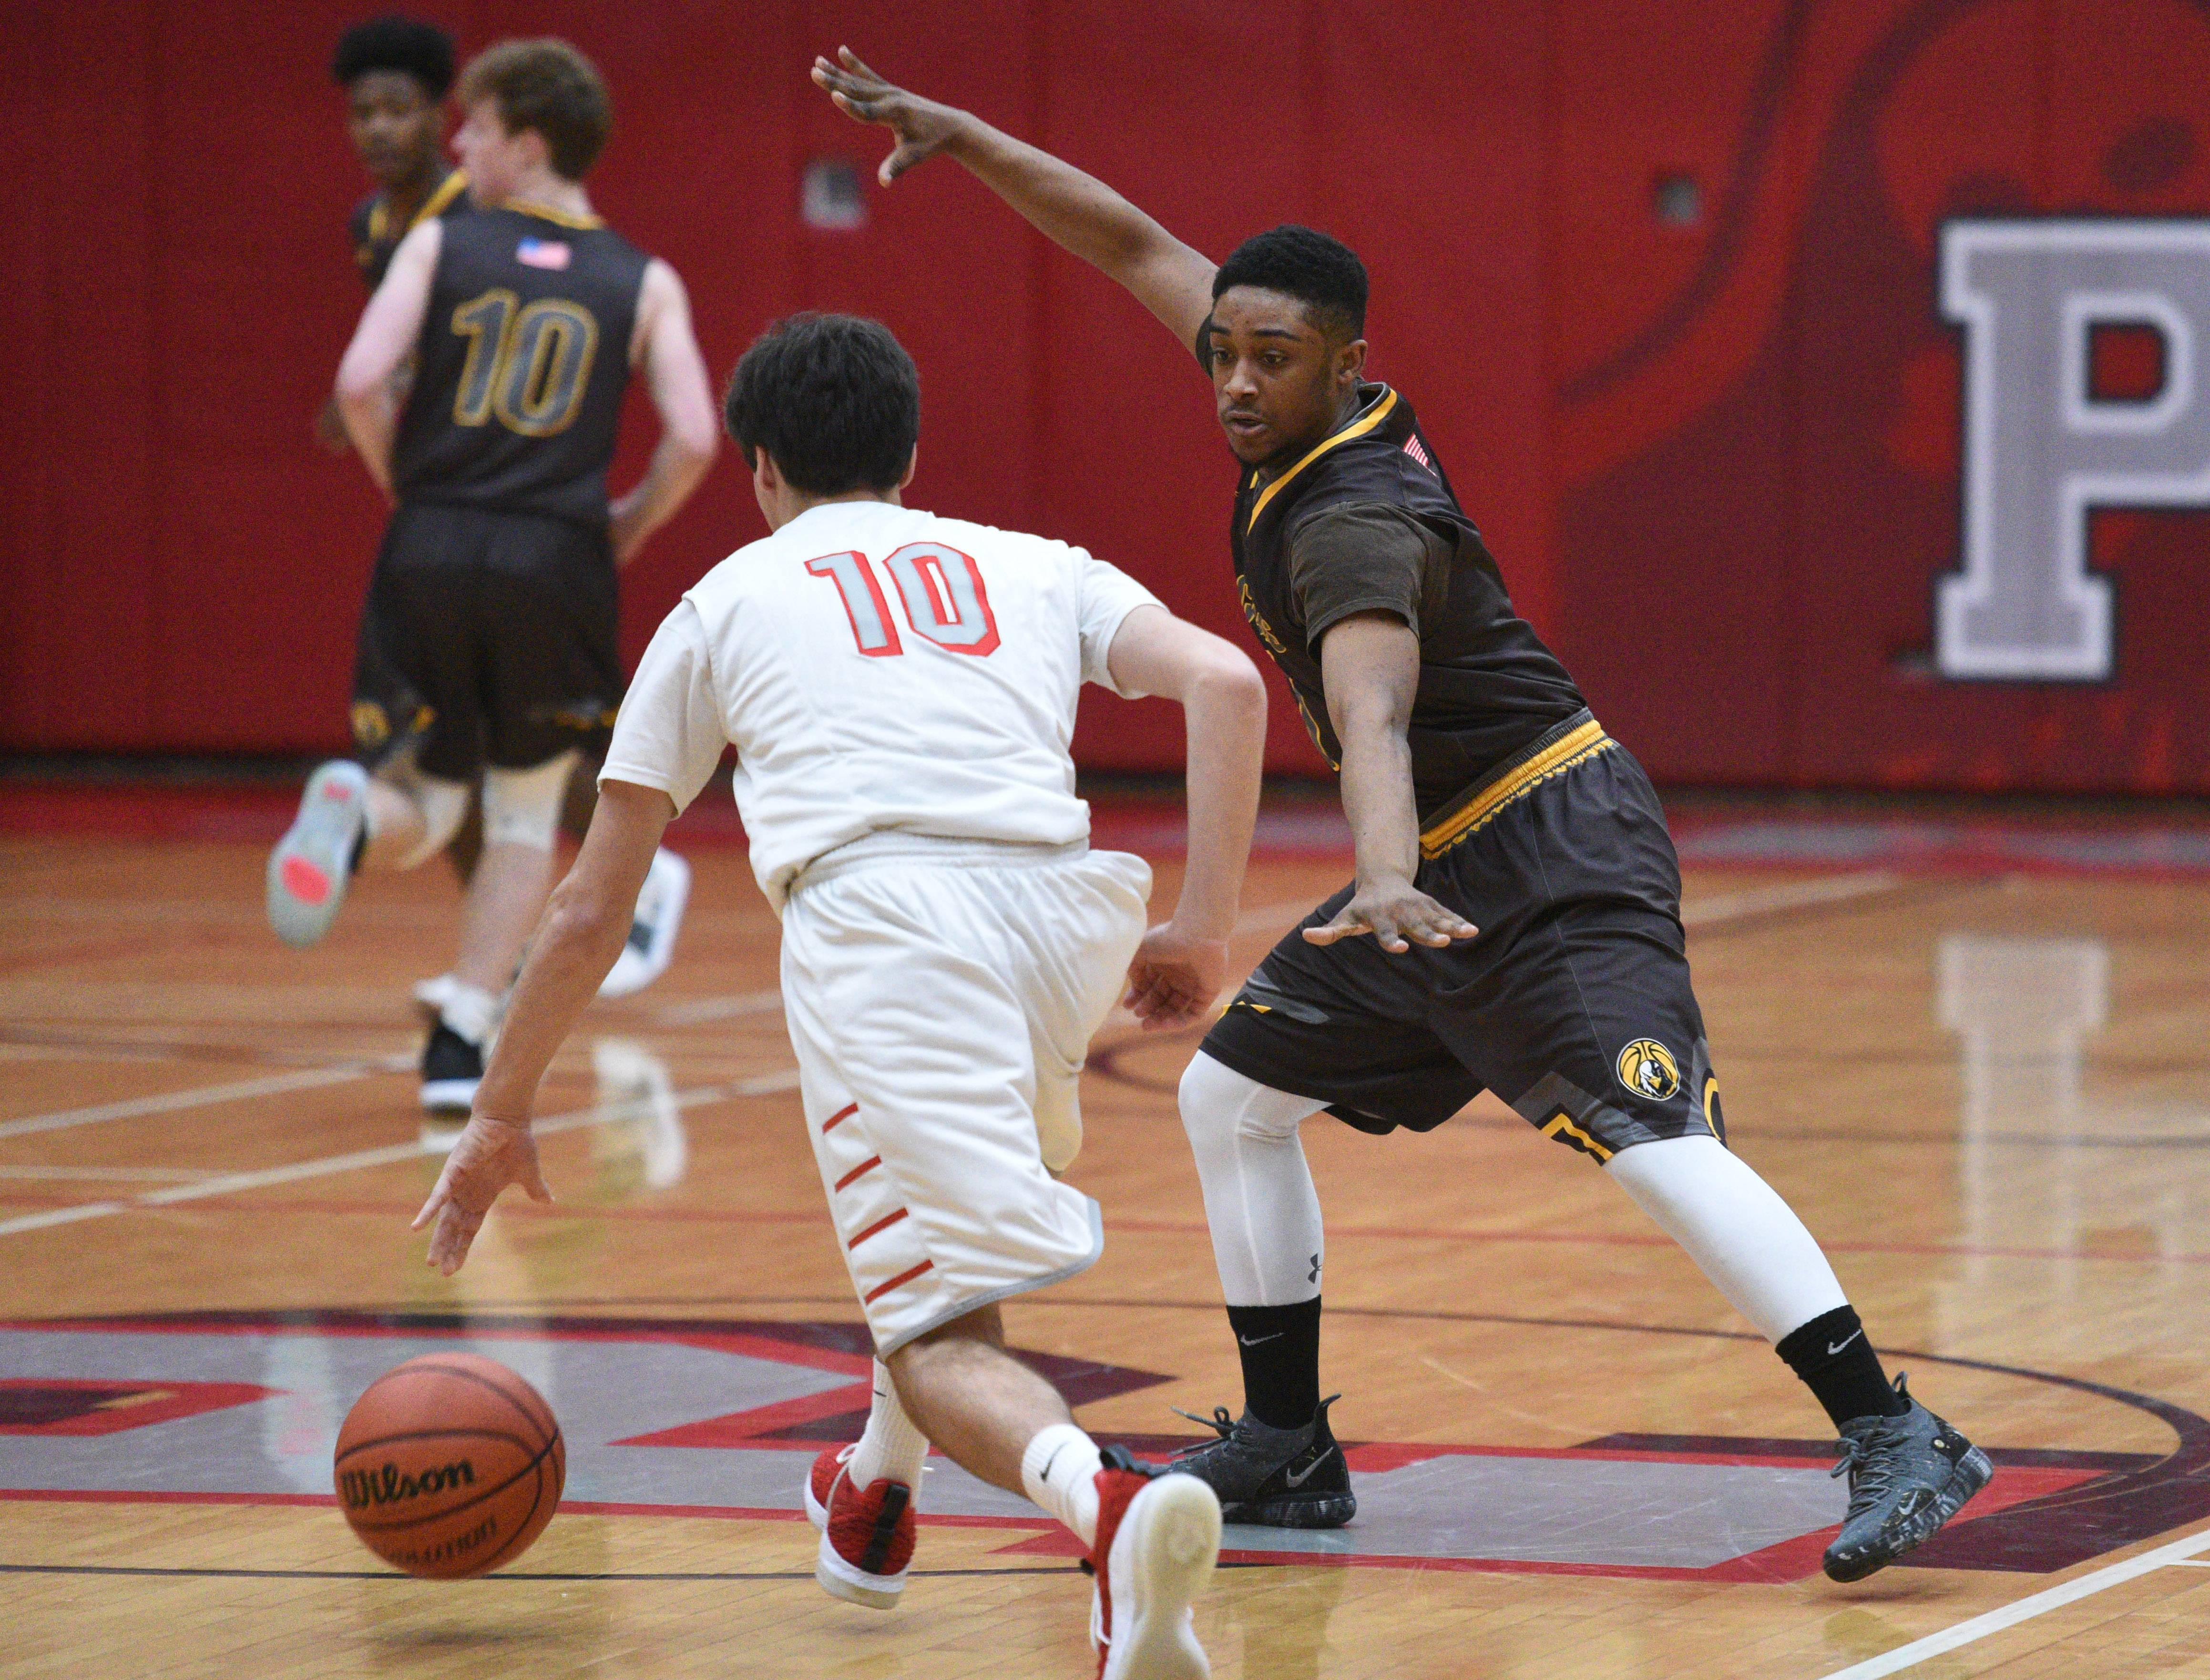 Jacobs' Jalen Ramsey, right, pressures Palatine's Luke Seiffert (10) during the boys basketball game Friday in Palatine.